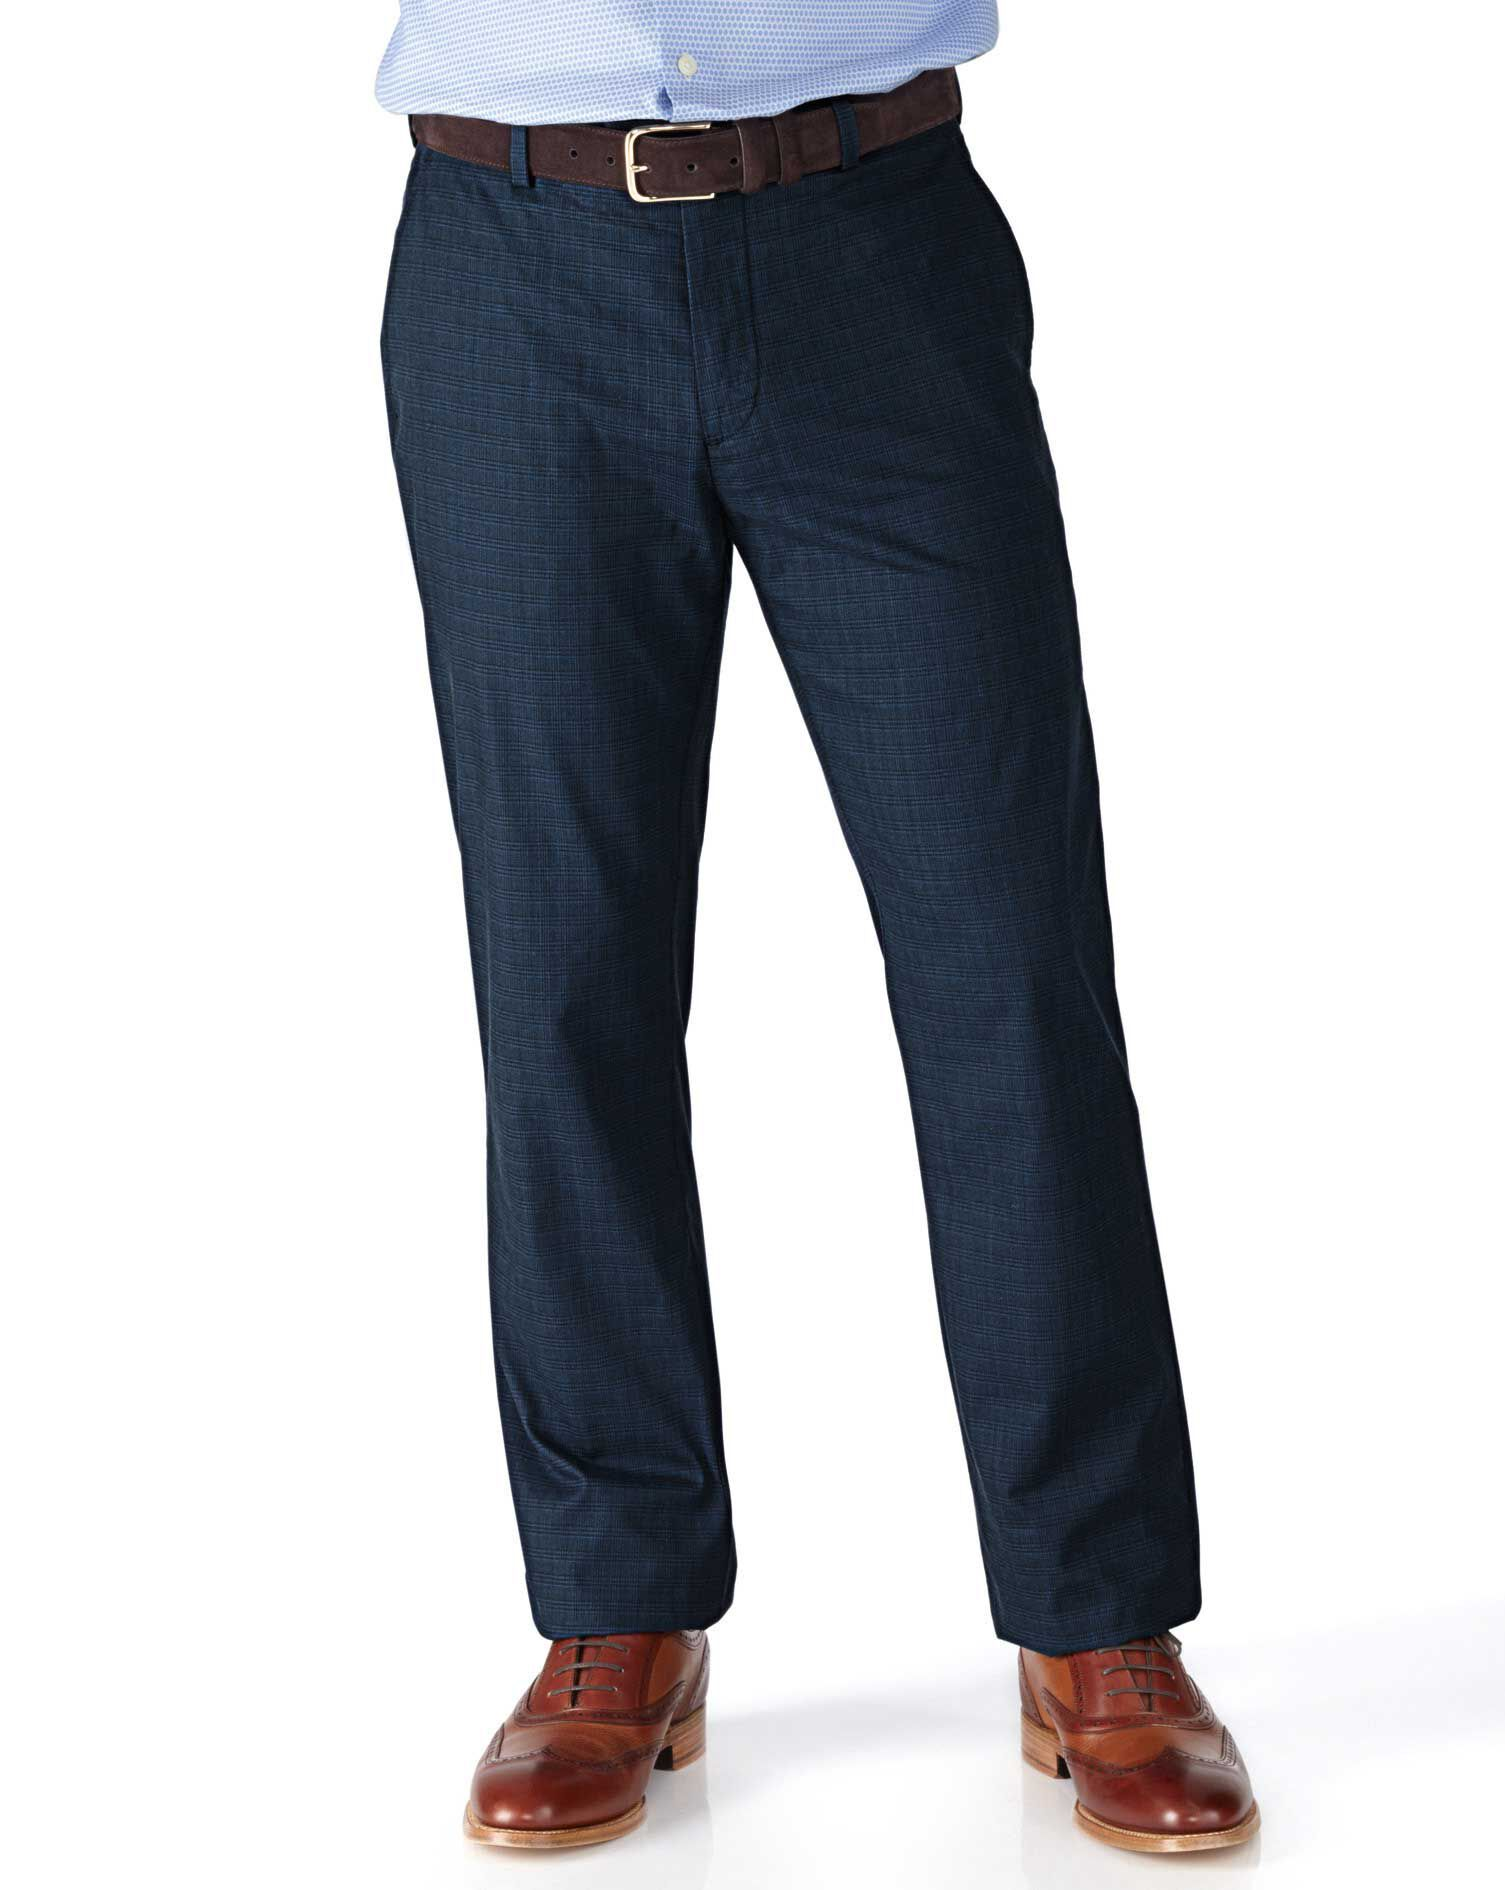 Indigo Classic Fit Prince Of Wales Check Stretch Trousers Size W32 L32 by Charles Tyrwhitt